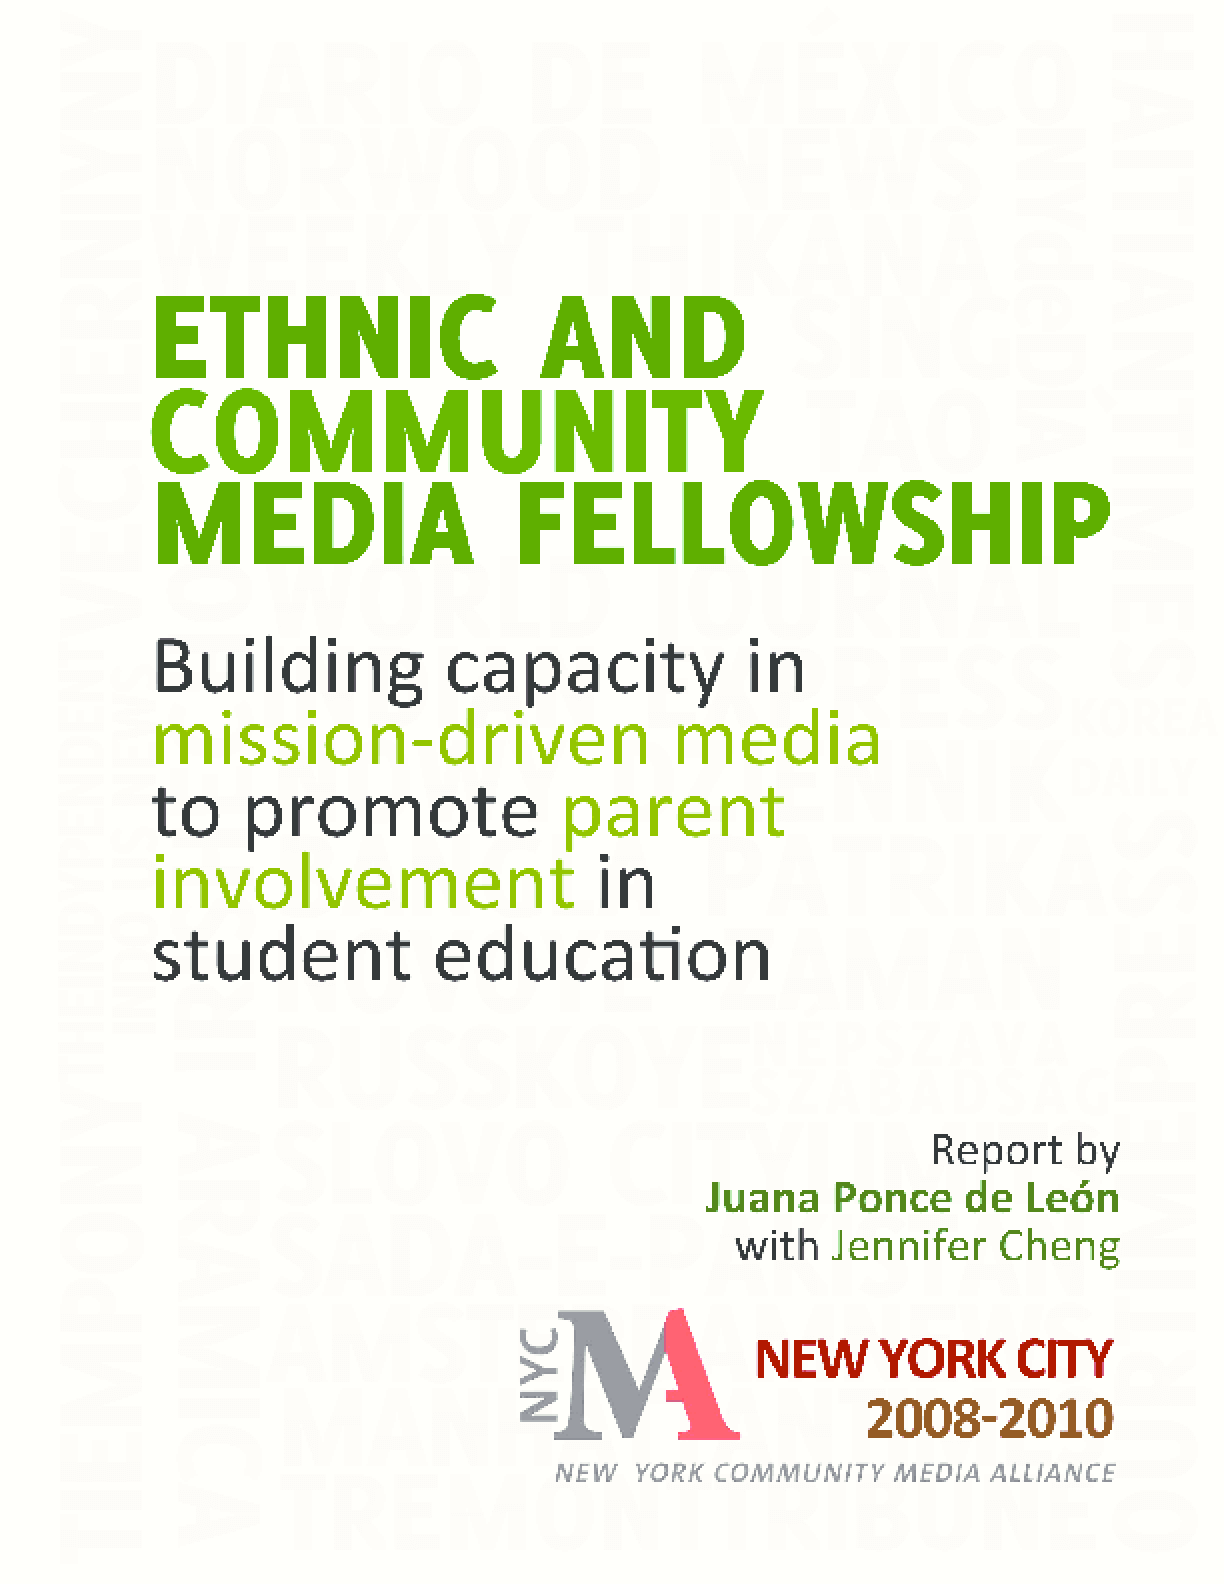 Ethnic and Community Media Fellowship: Building Capacity in Mission-Driven Media to Promote Parent Involvement in Student Education